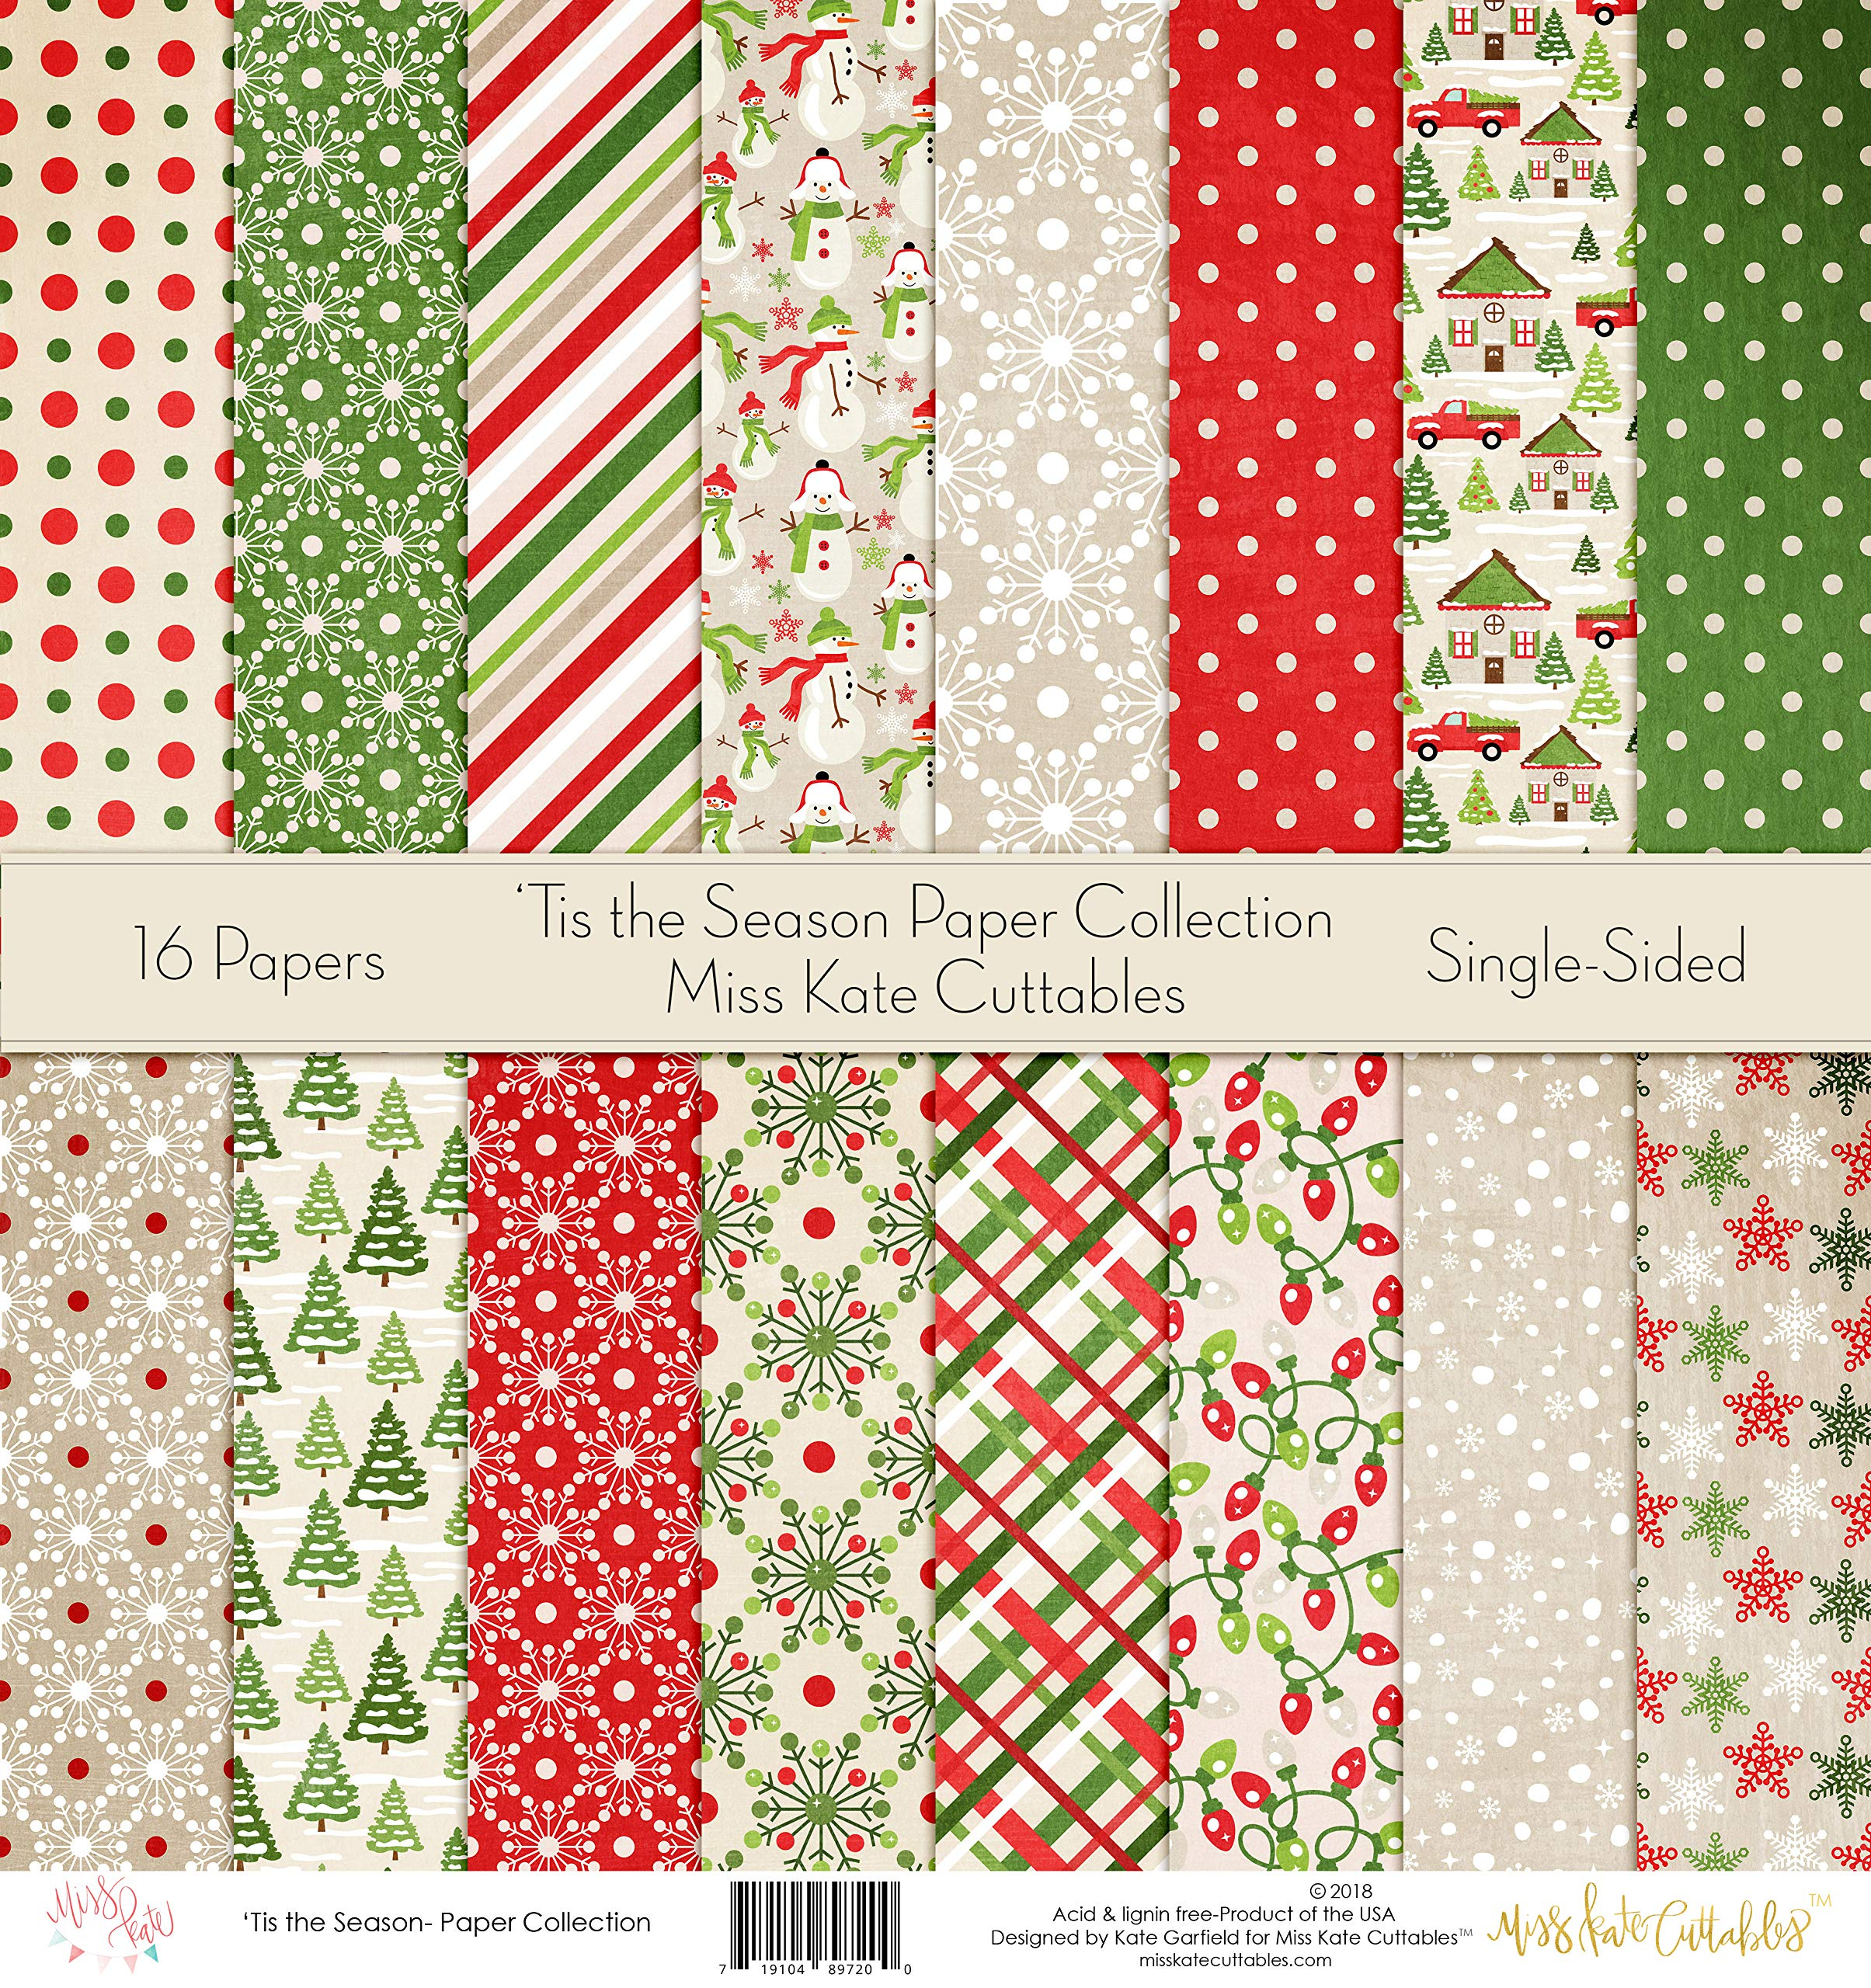 Christmas Paper Ornament Patterns – Free Patterns